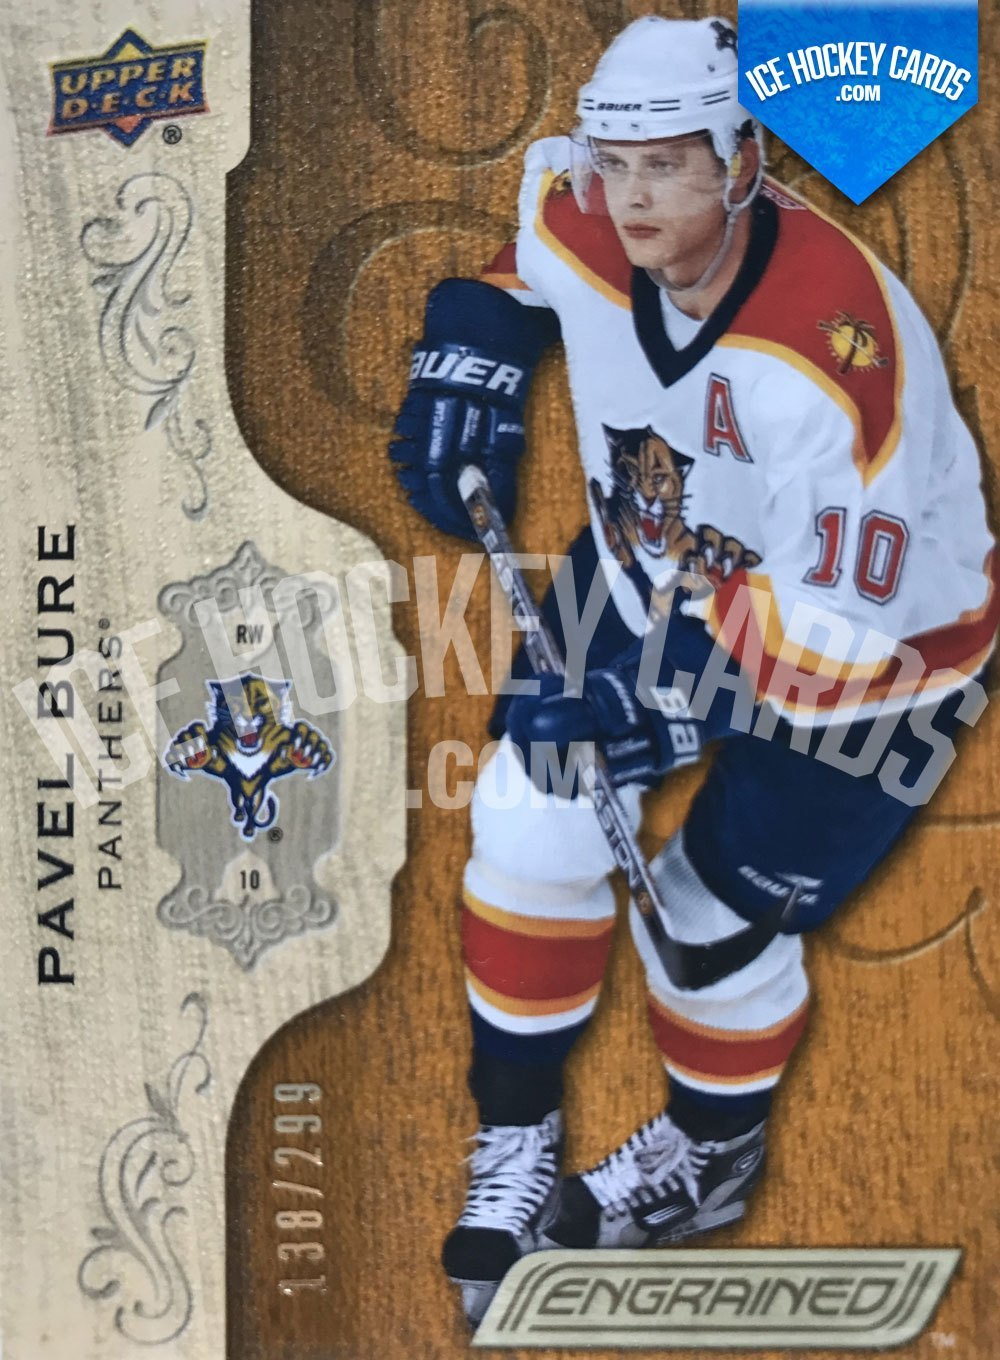 "Upper Deck - Engrained 18-19 - Pavel Bure ""Russian Rocket"" Base Card"